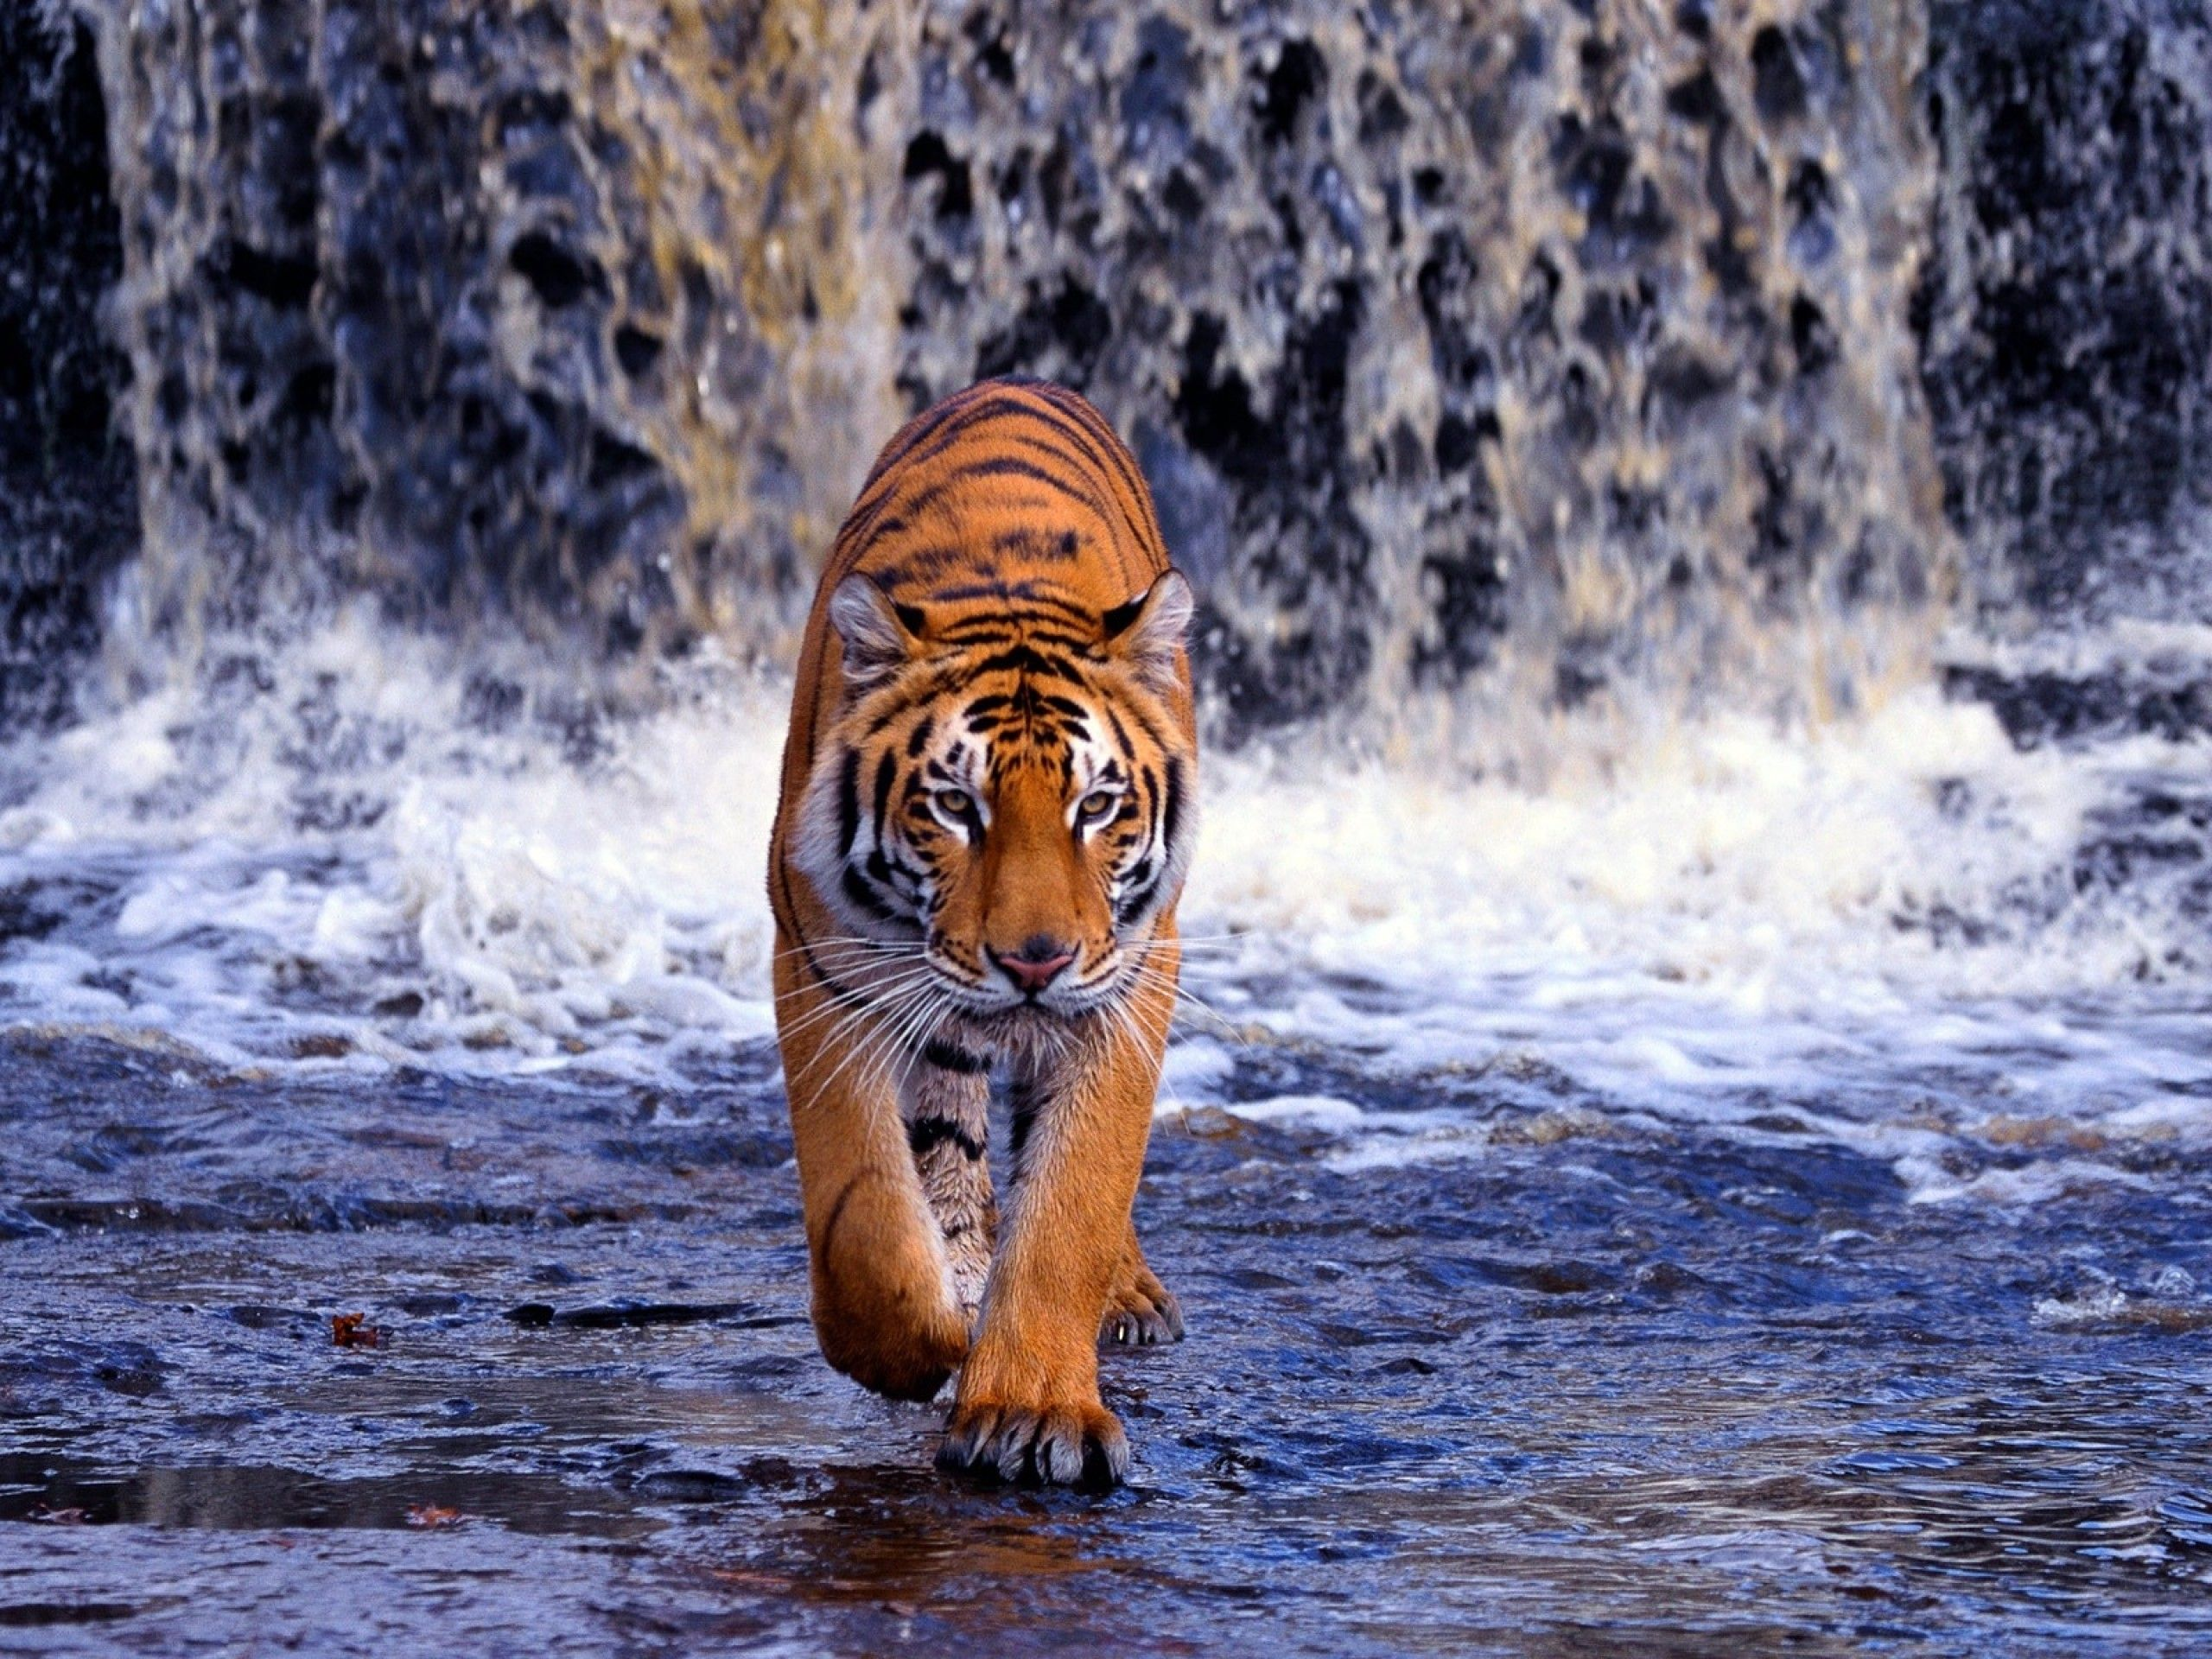 animal wallpaper hd - animals pics - nature animals tiger. royalty